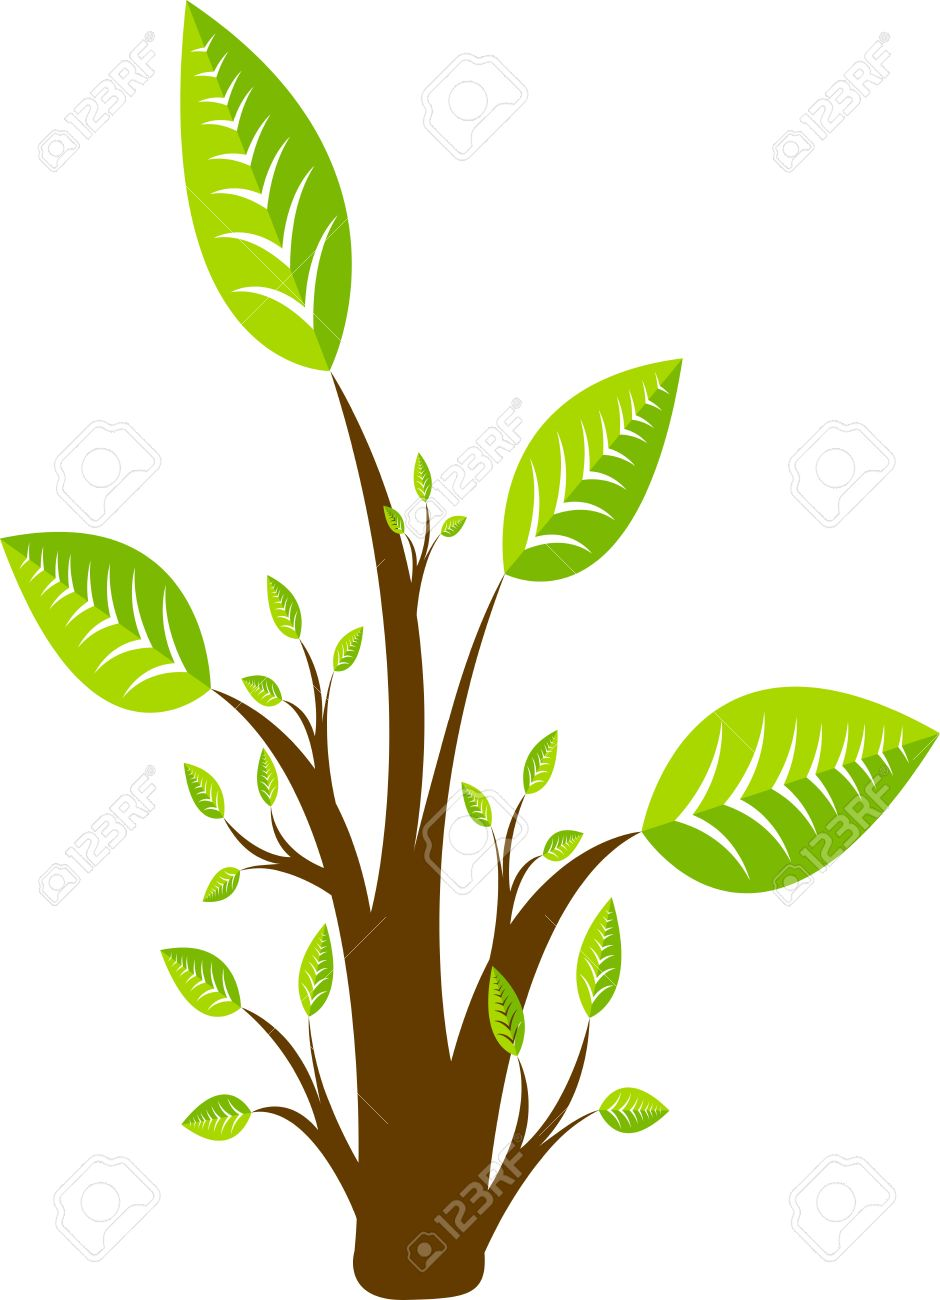 Illustration art of a tree with isolated background Stock Vector - 21739318